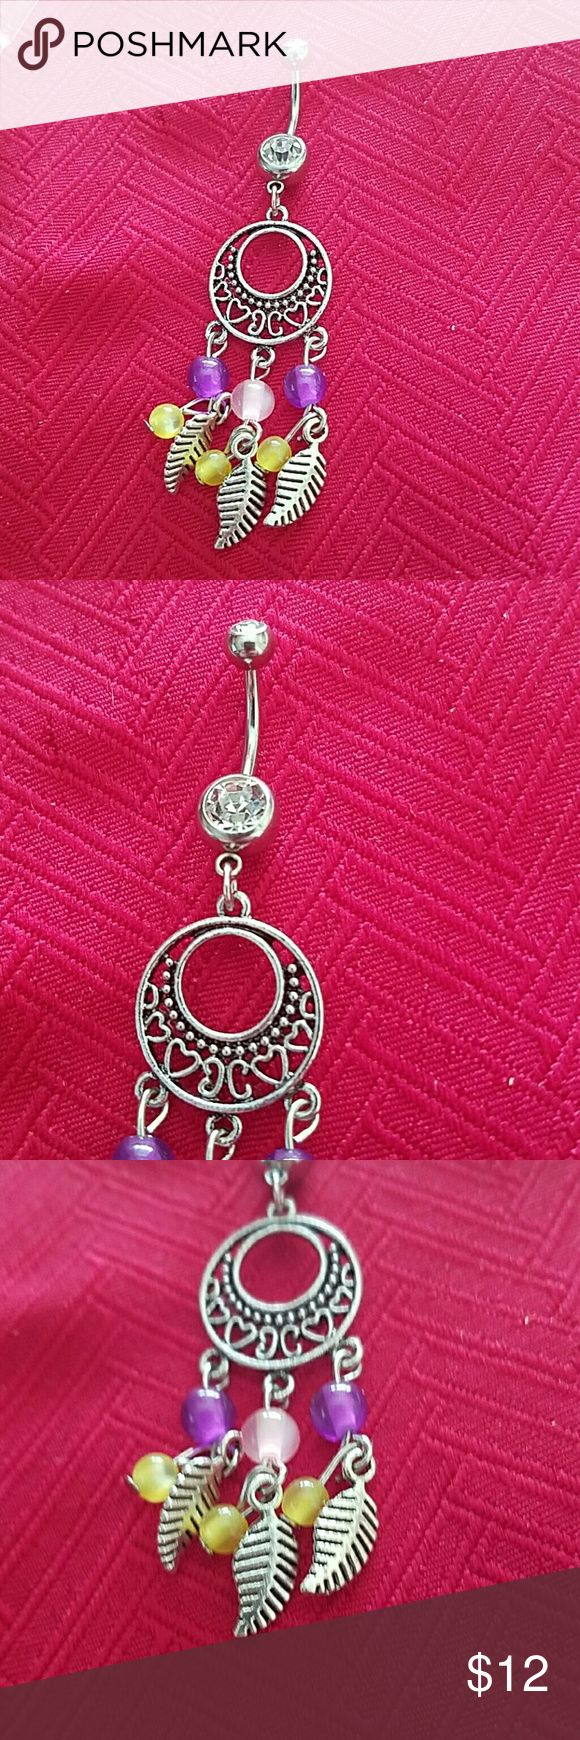 New dreamcatcher navel belly ring New dreamcatcher navel belly ring dangles Jewelry